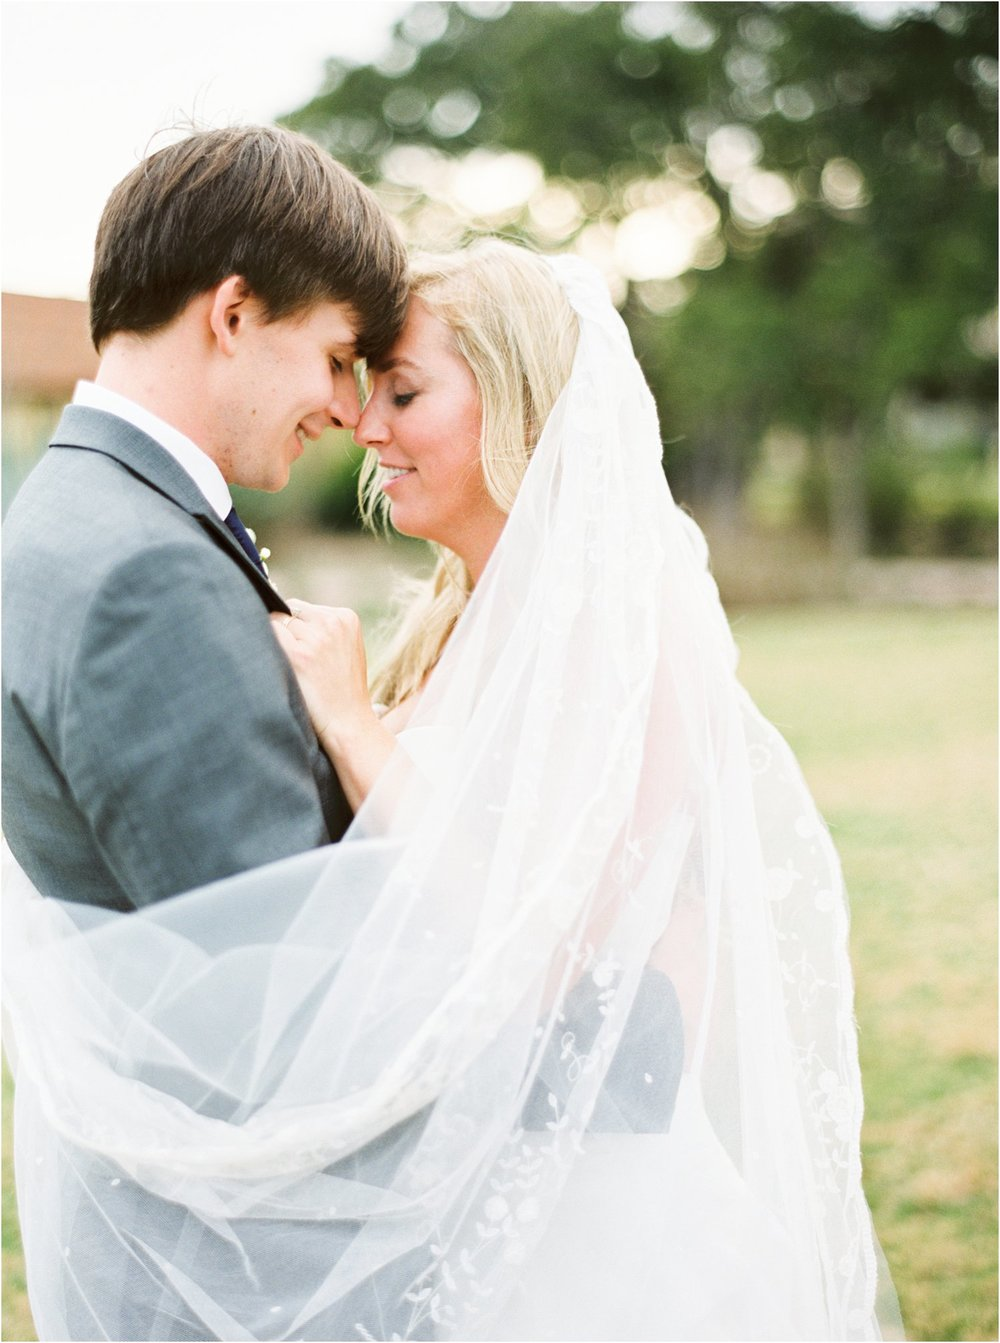 Catherine + Nick | Jessica Scott Photography